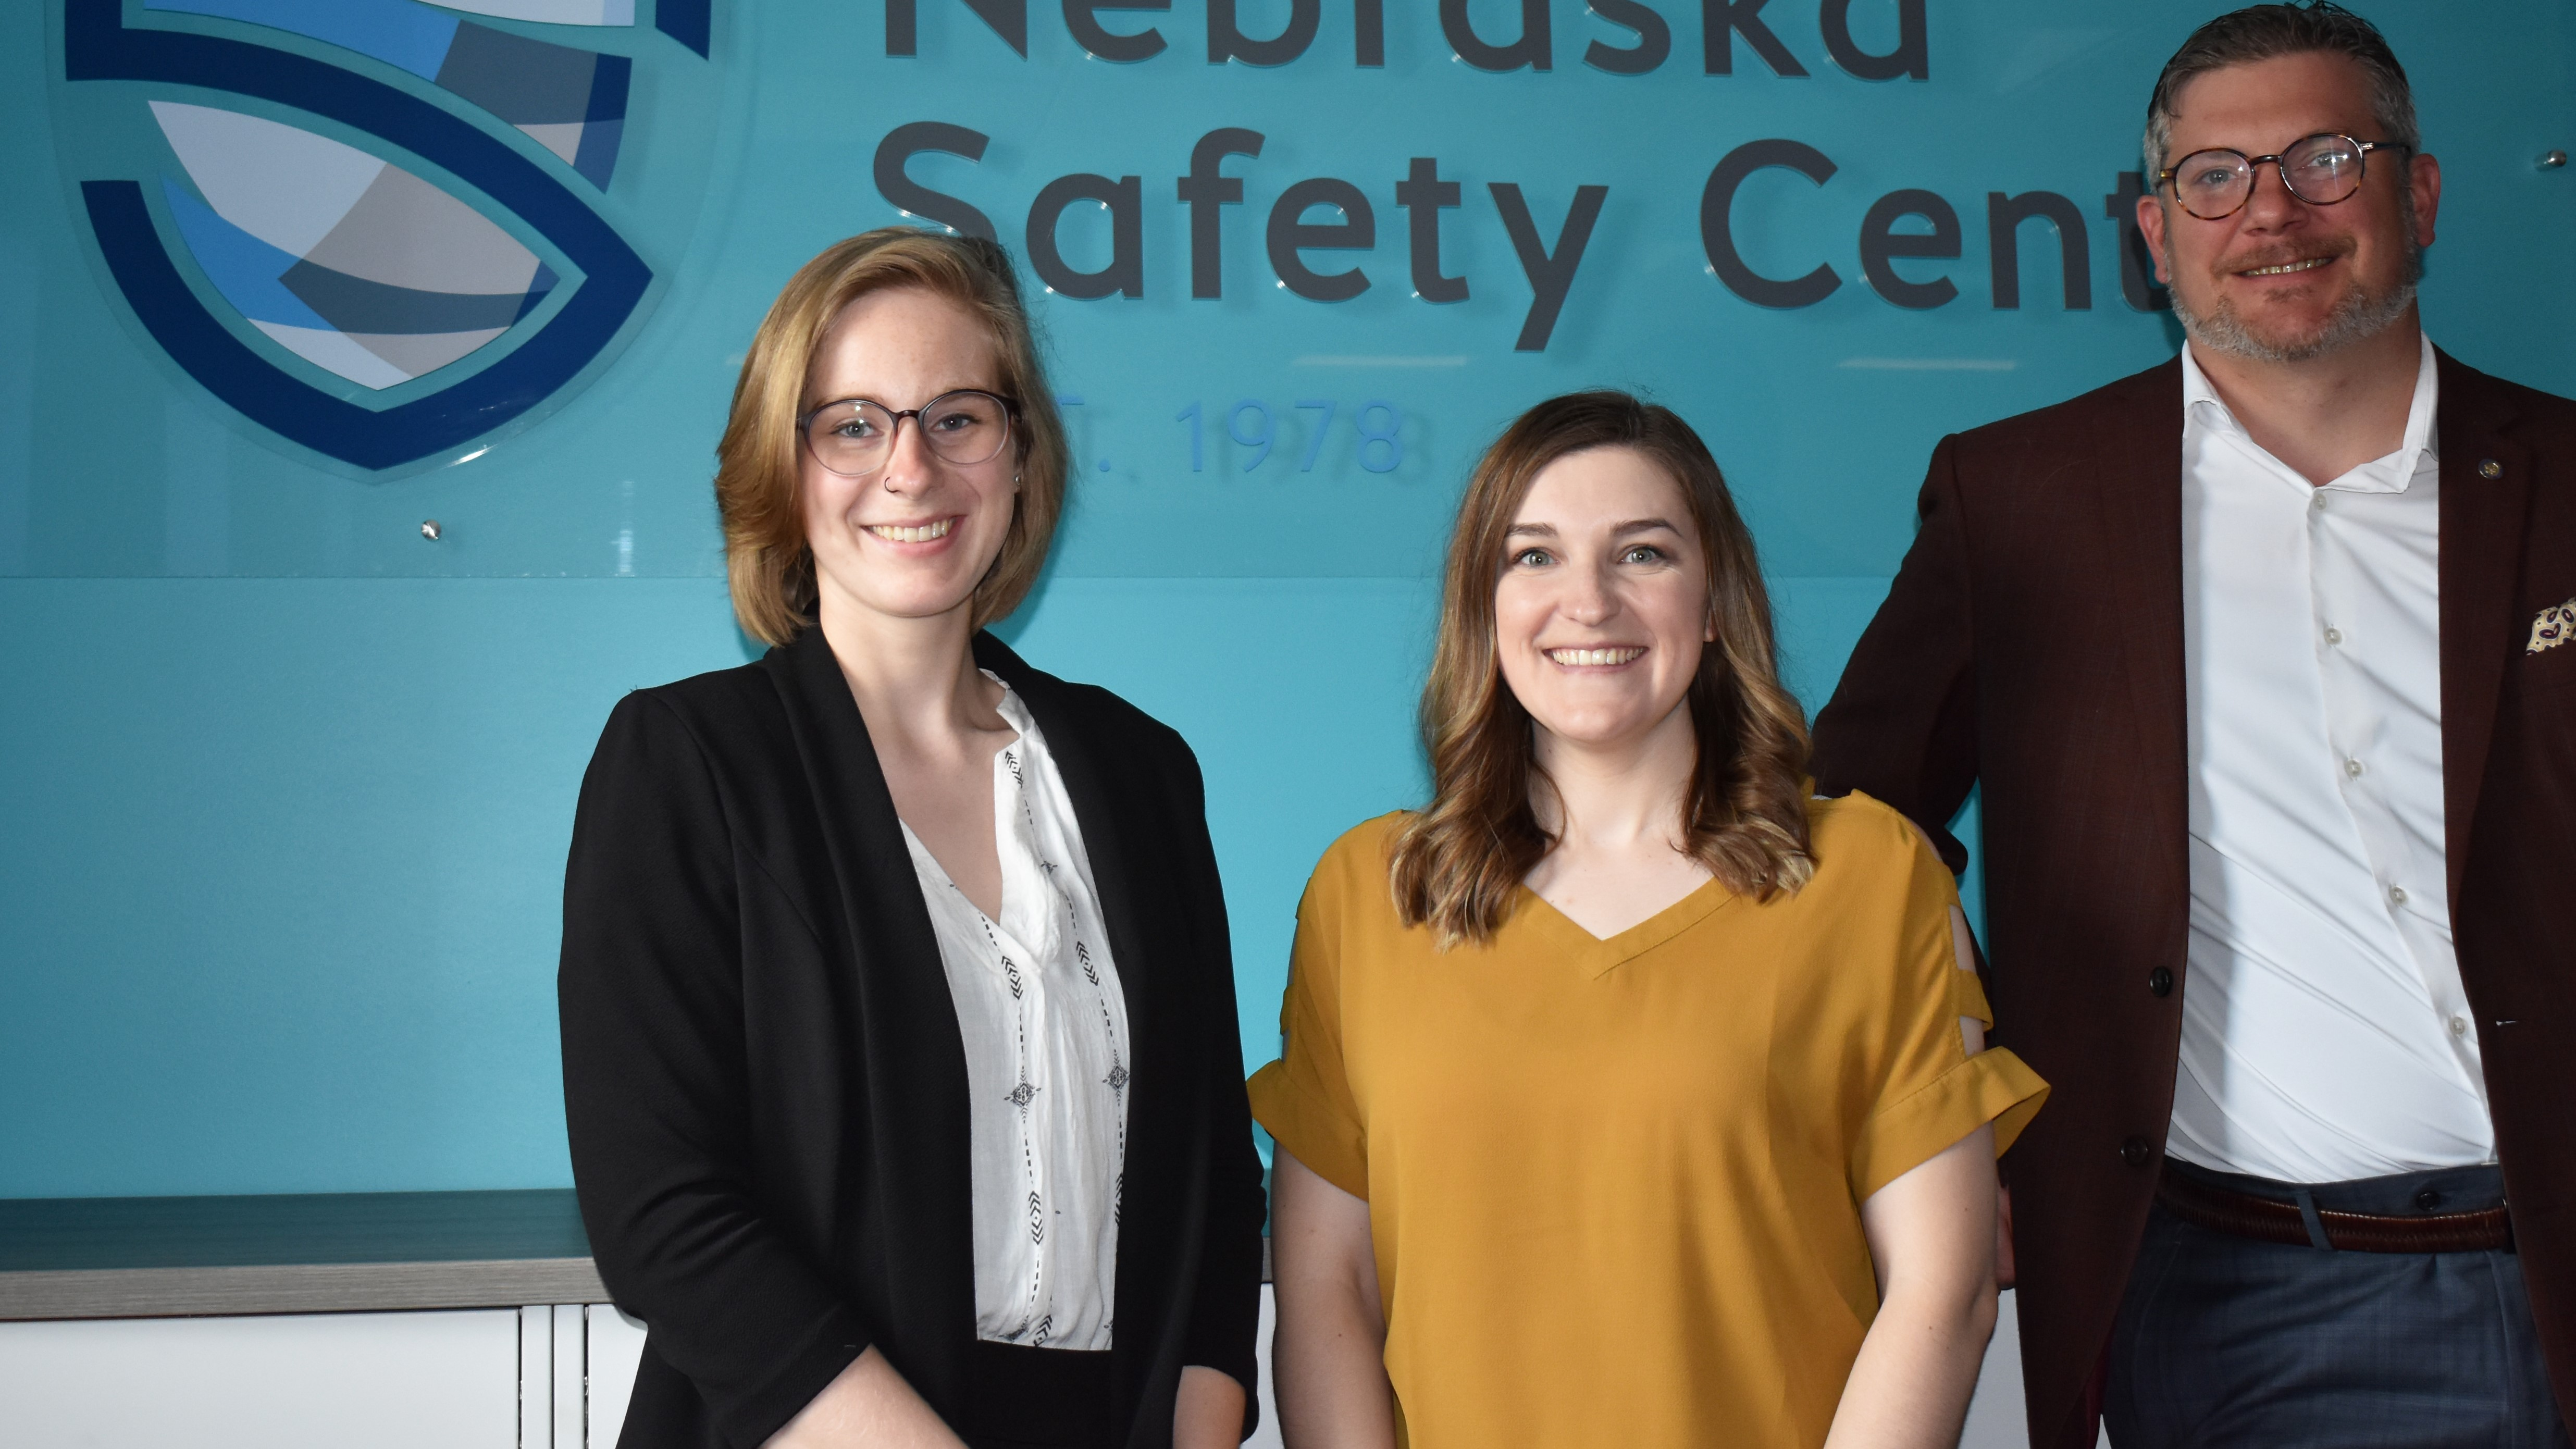 Nebraska Safety Center staff standing in front of a teal wall and logo sign